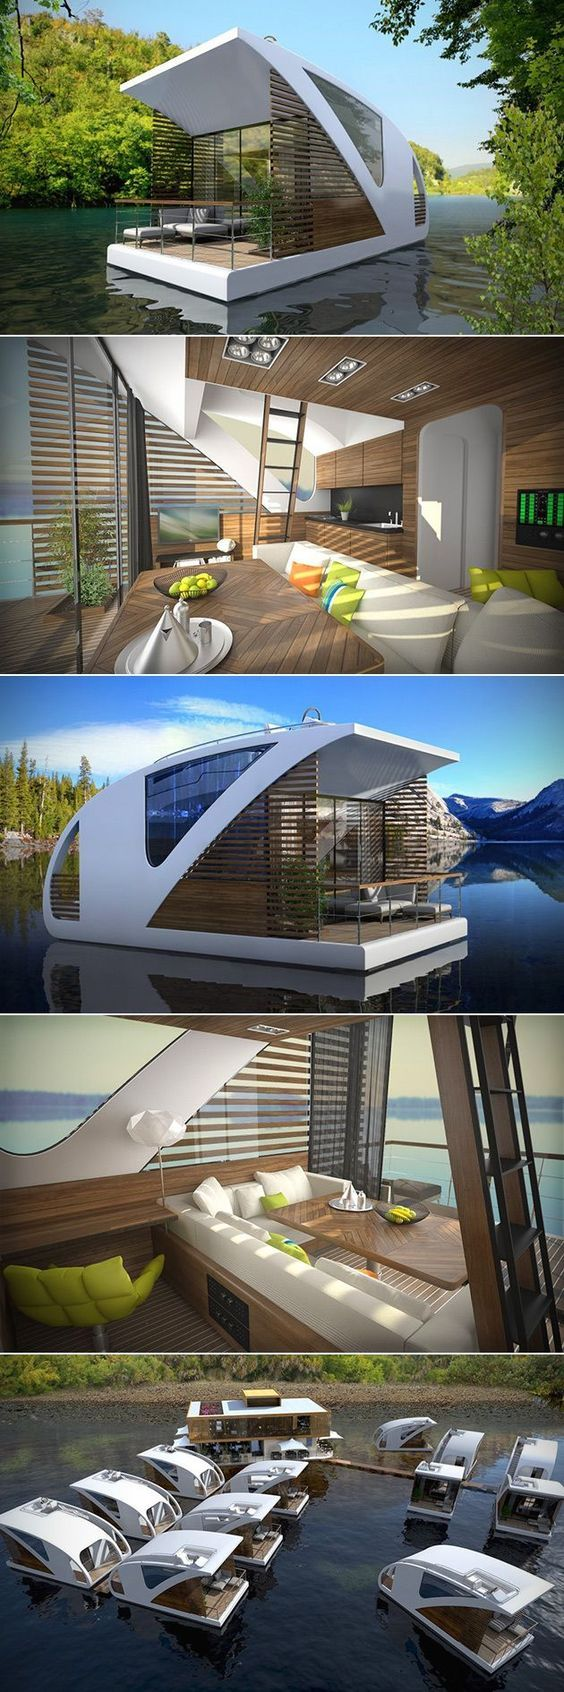 This new Floating Hotel with Catamaran Apartments aims at promoting low-impact tourism on inland waters. Consisting of small, floating catamarans, the floating hotel is a perfect solution for tourism without harming the natural environment.: